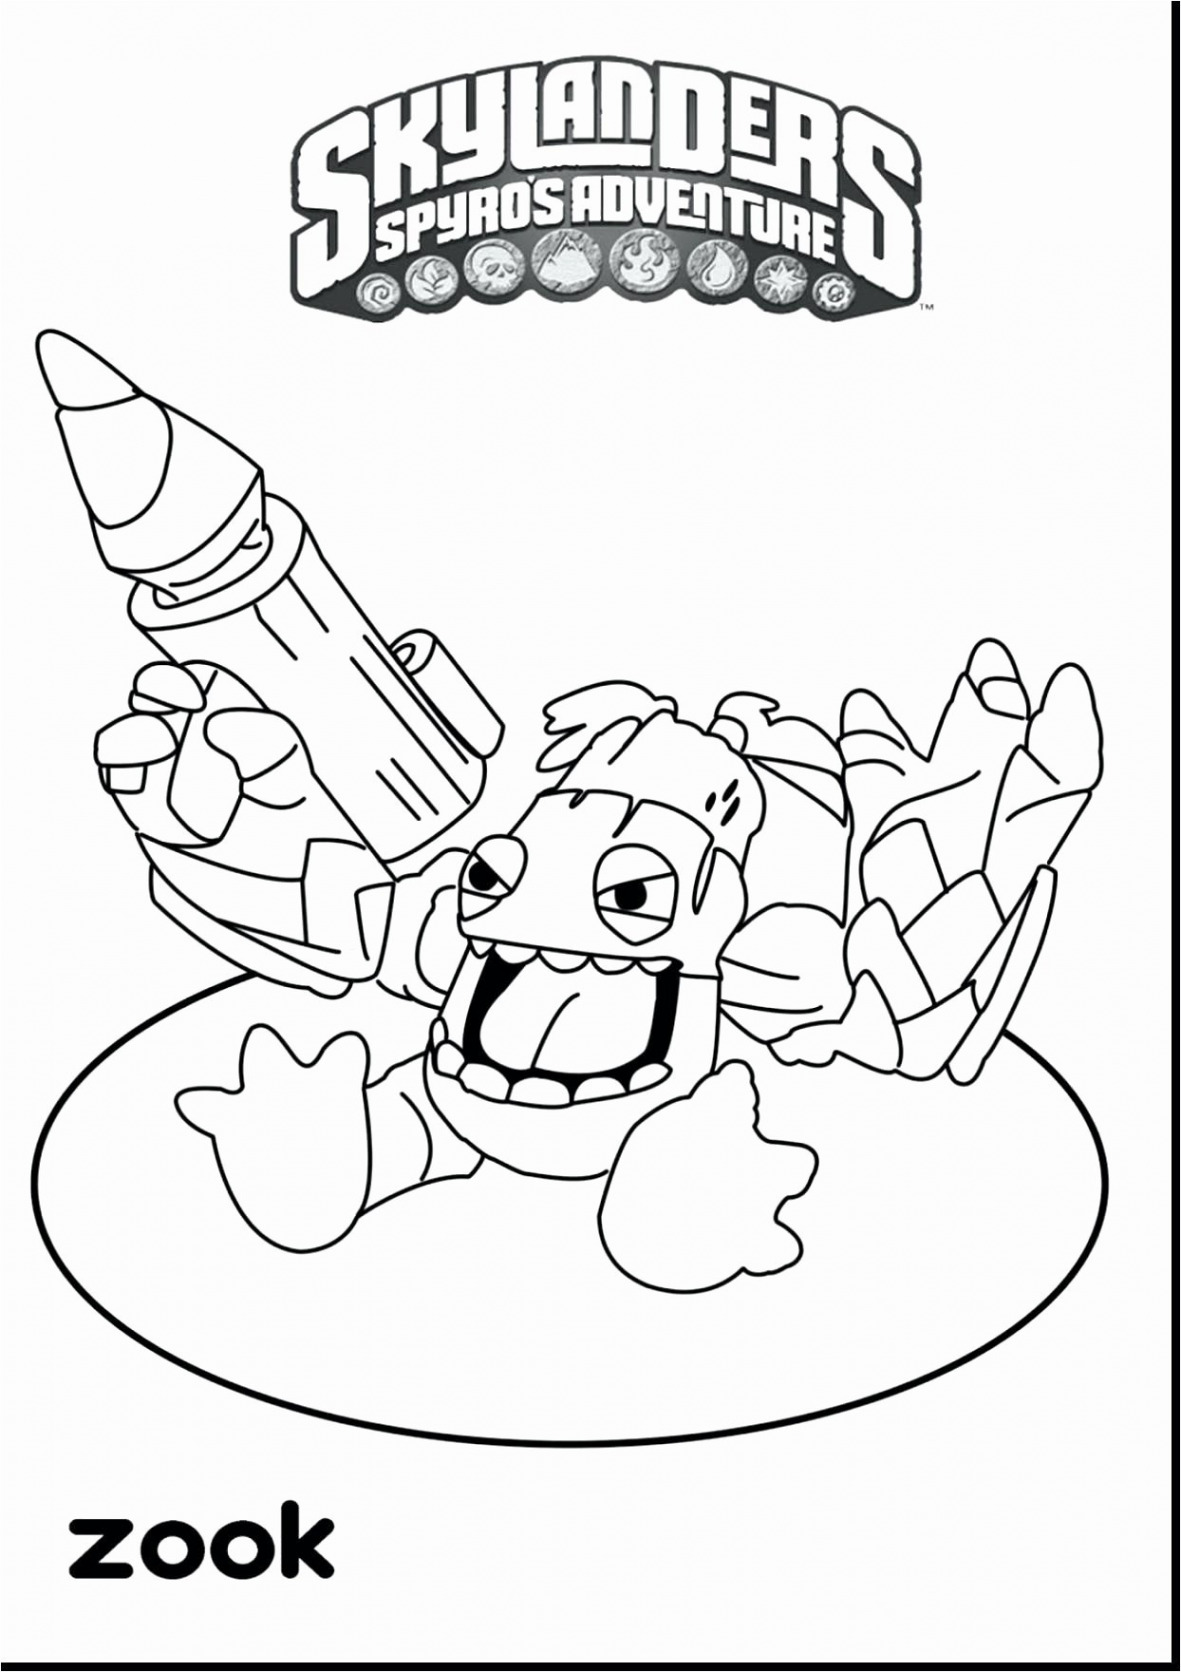 Christmas Reindeer Coloring Pages Printable With Rudolph The Red Nosed Free